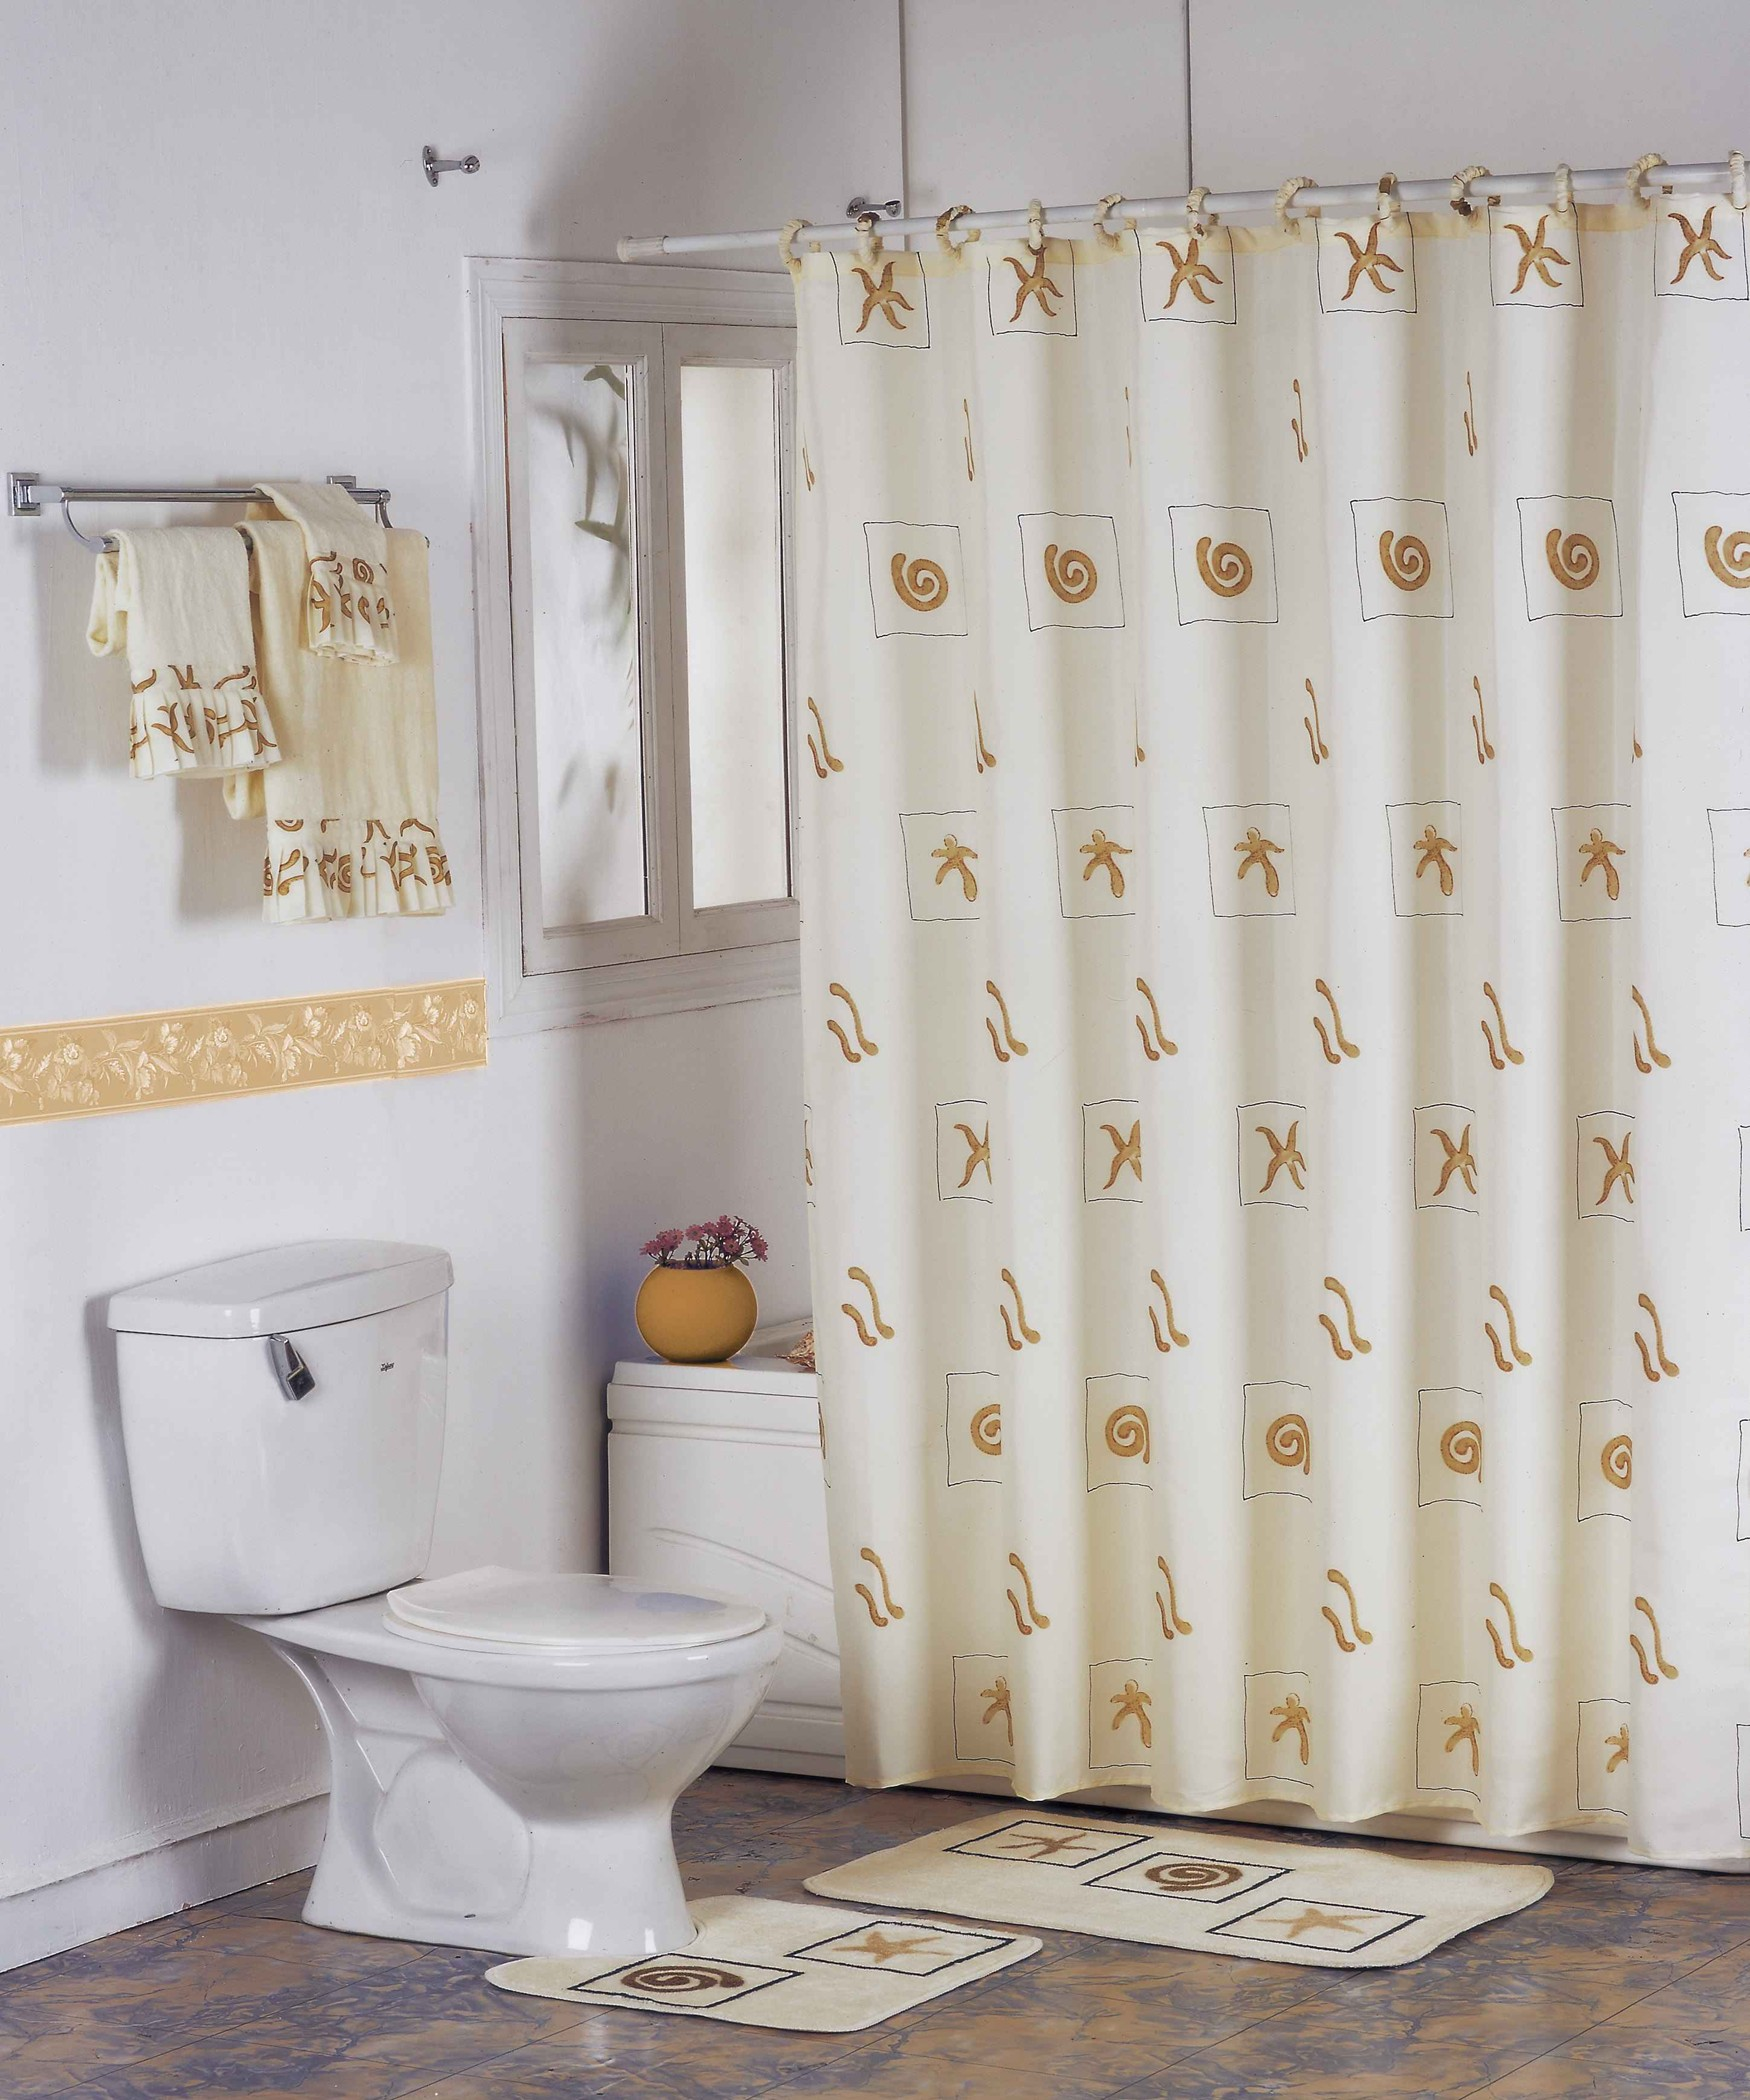 astounding-bathroom-curtains-remarkable-ideas-sun-filled-features-an-oval-freestanding-tub-paired-with.jpg